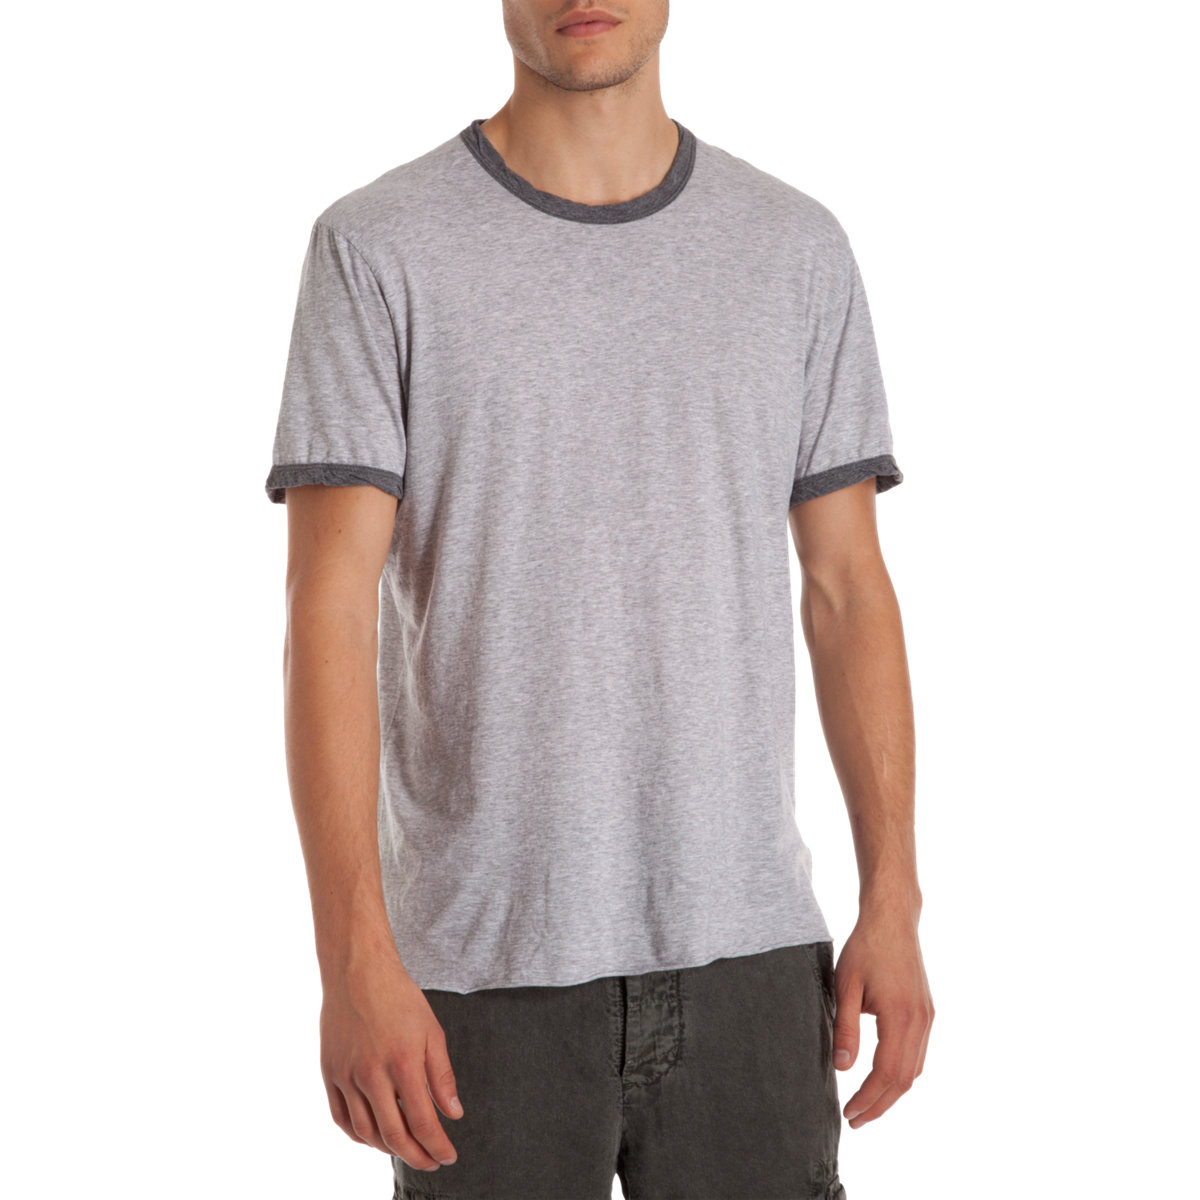 James perse ringer tee in gray for men grey lyst for James perse t shirts sale